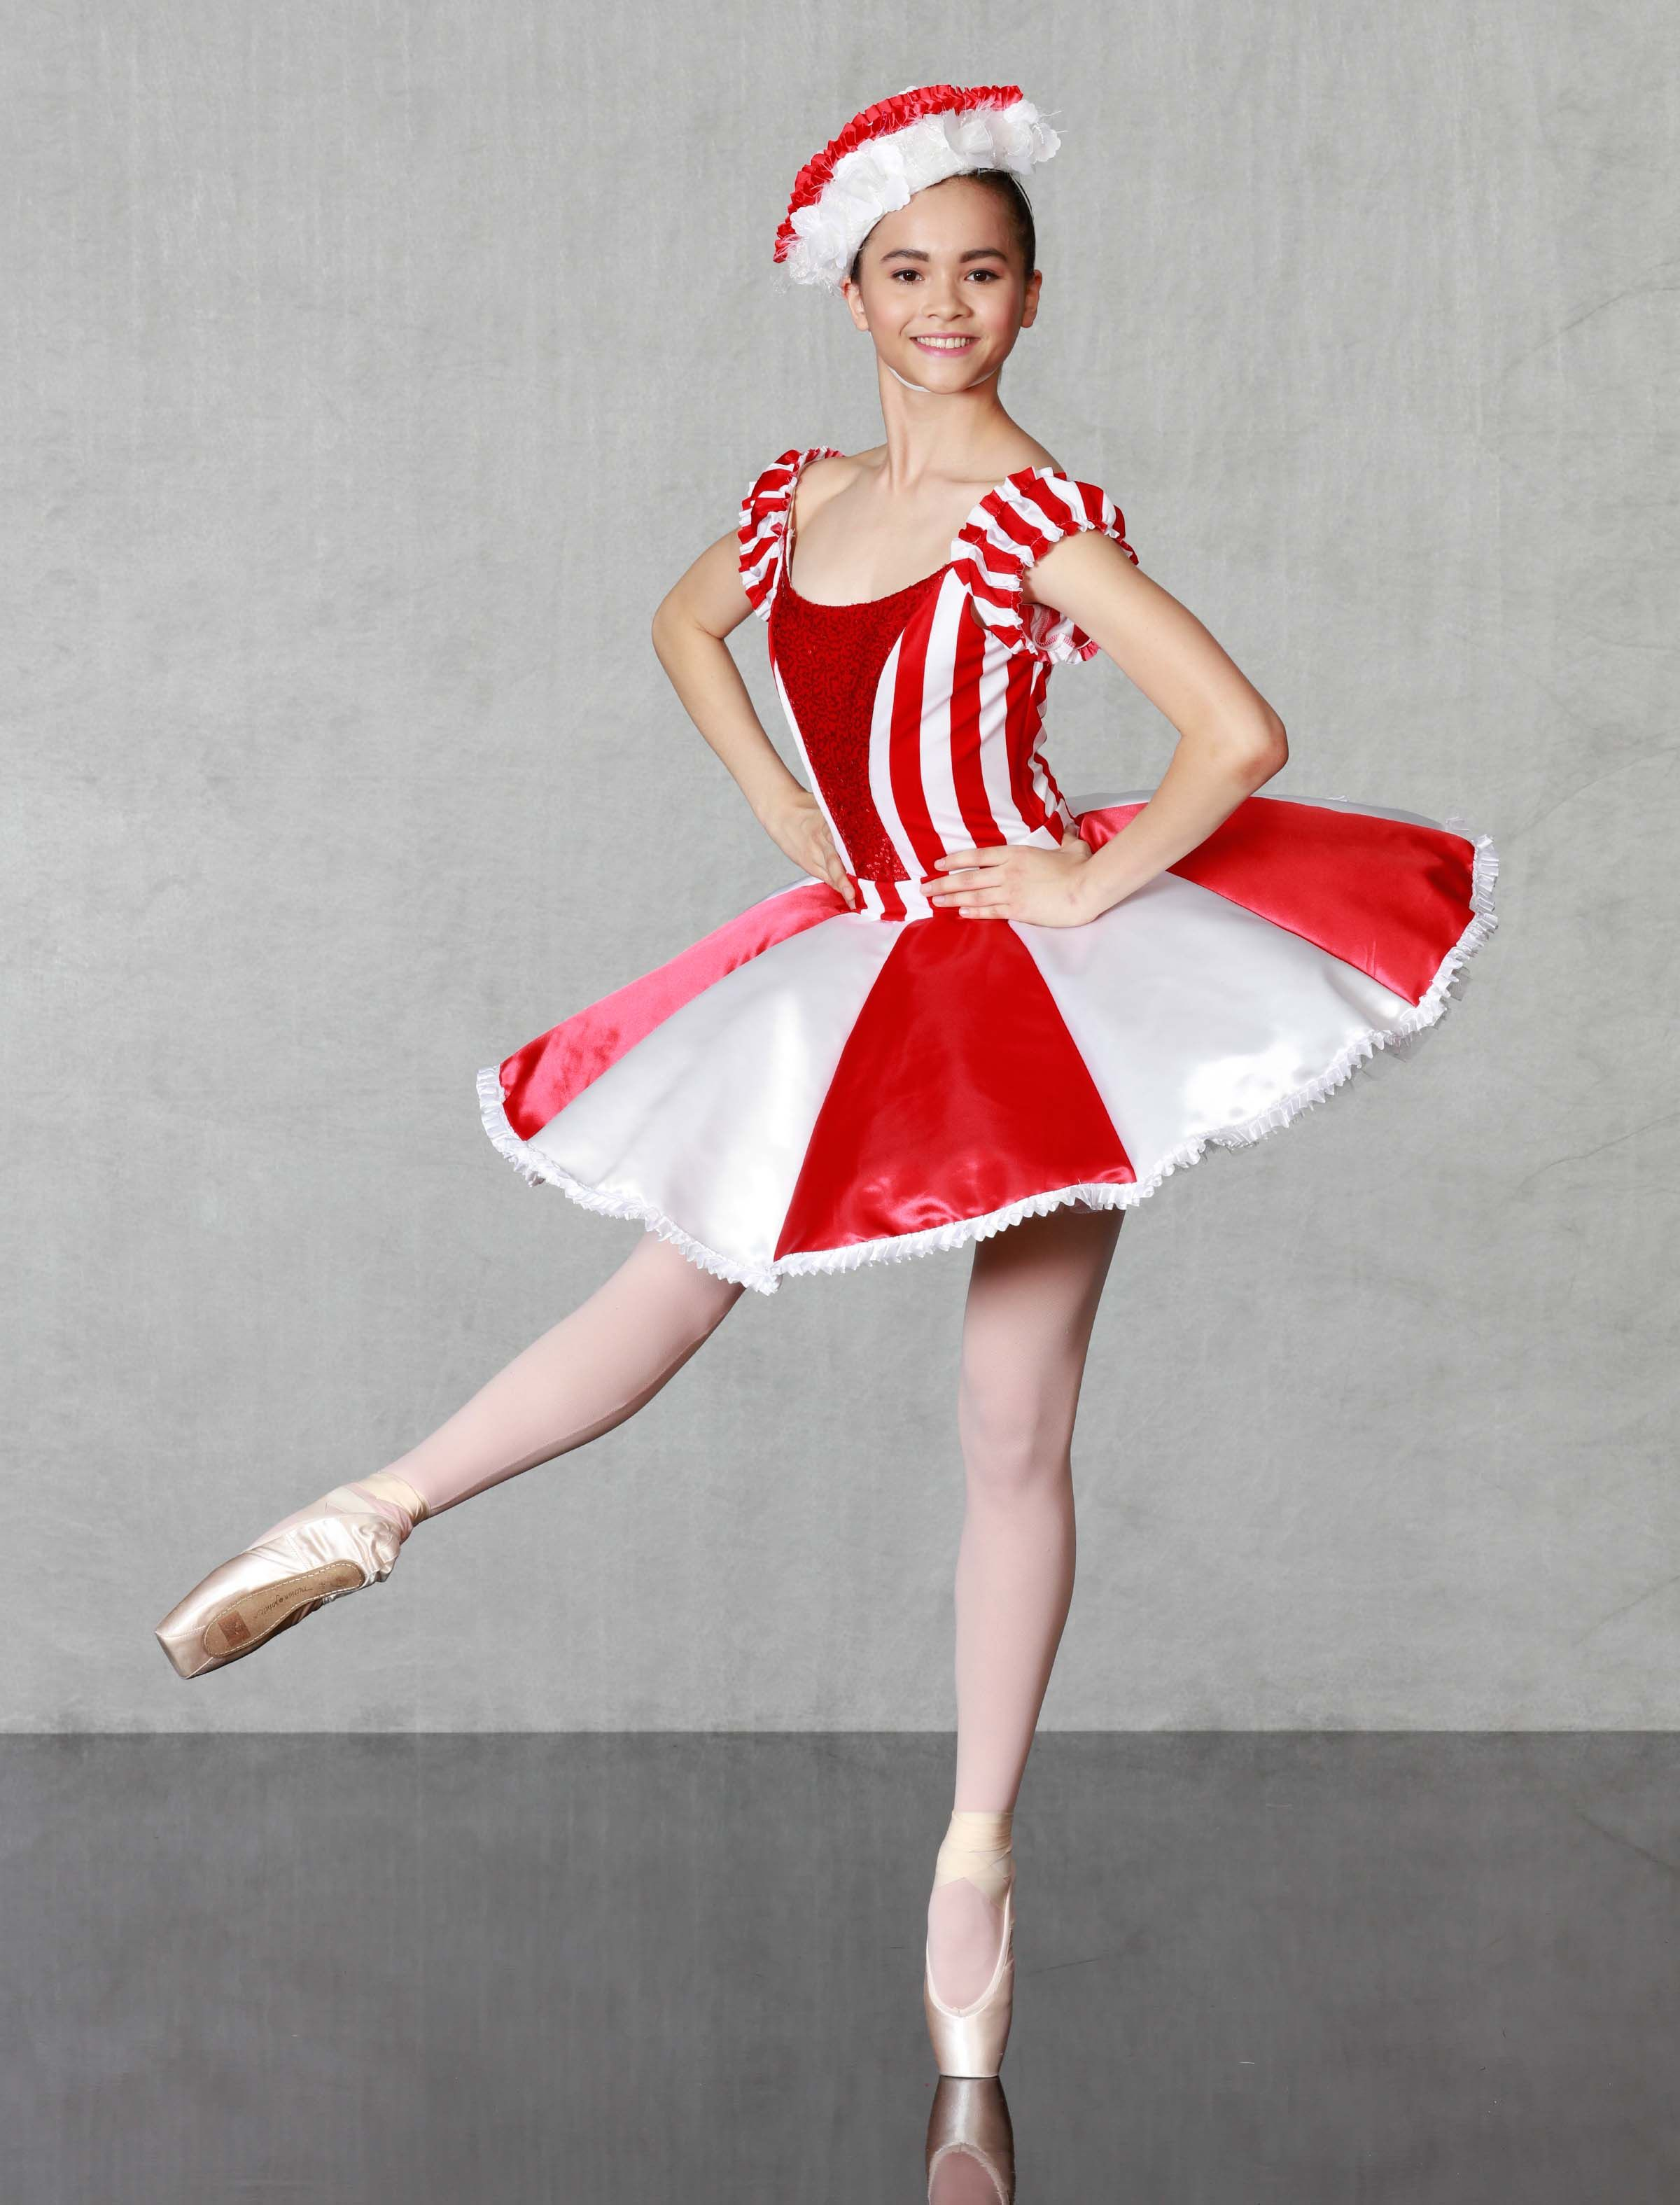 Pin by Mary Jane Jaugar on Ballet costumes